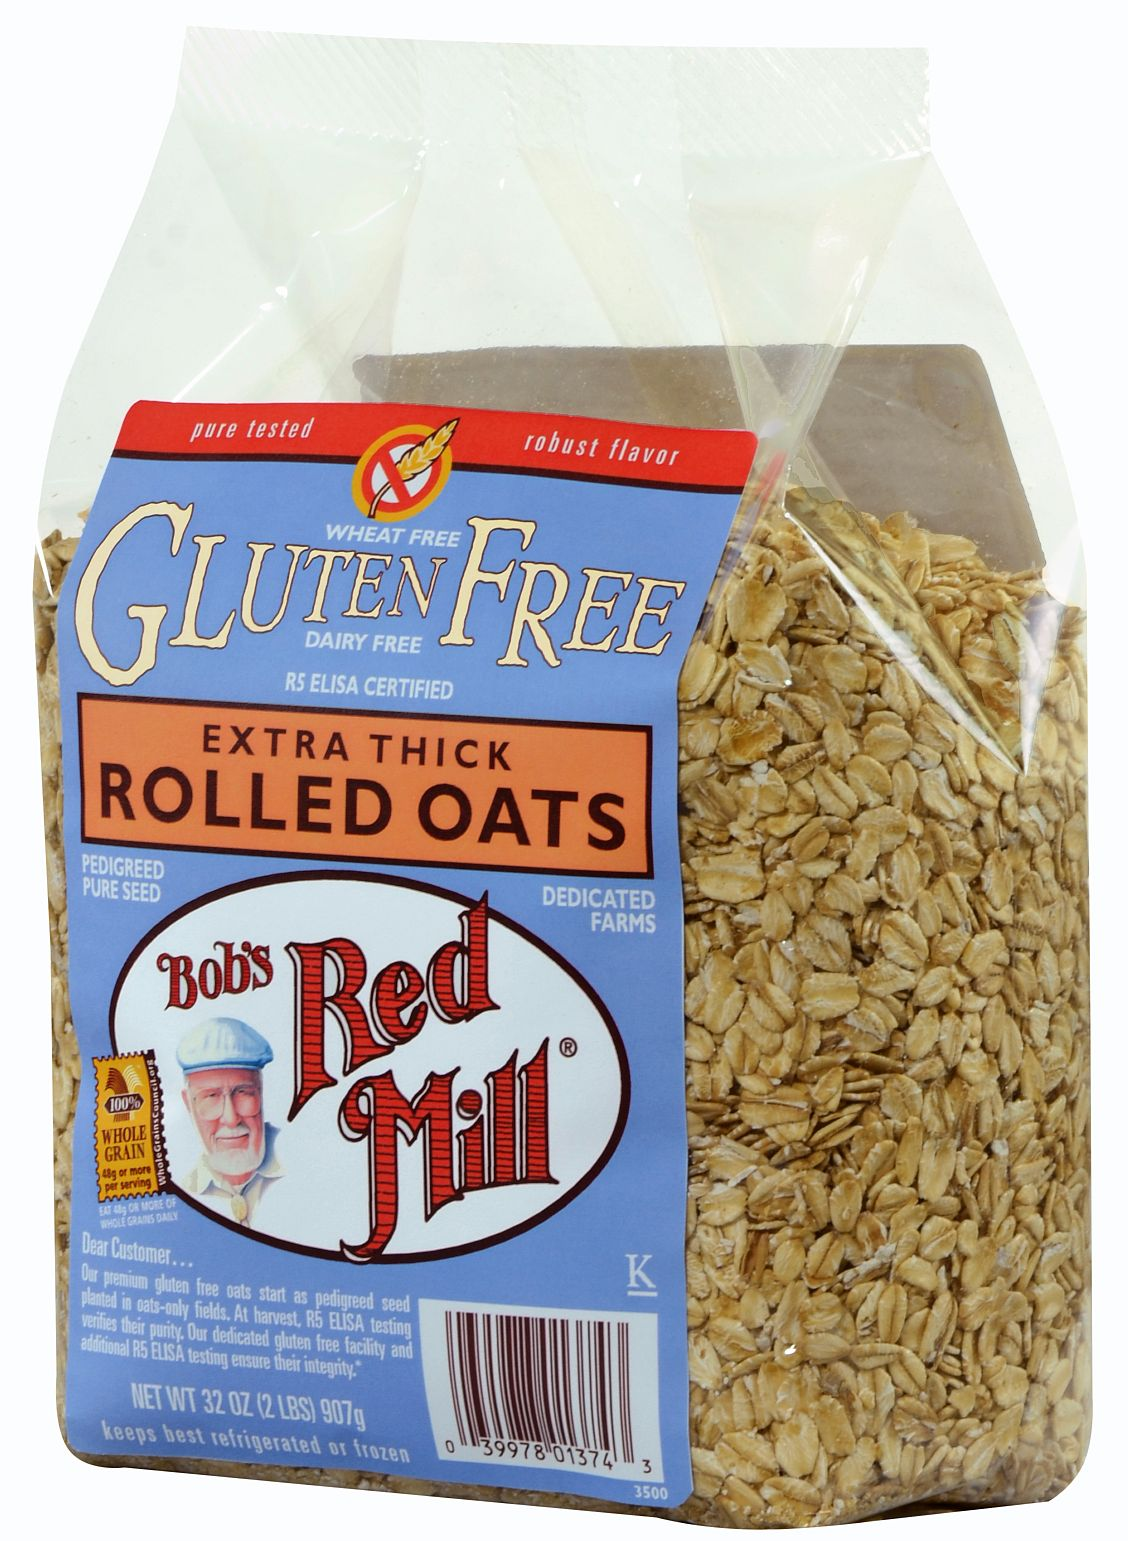 Do rolled oats contain gluten